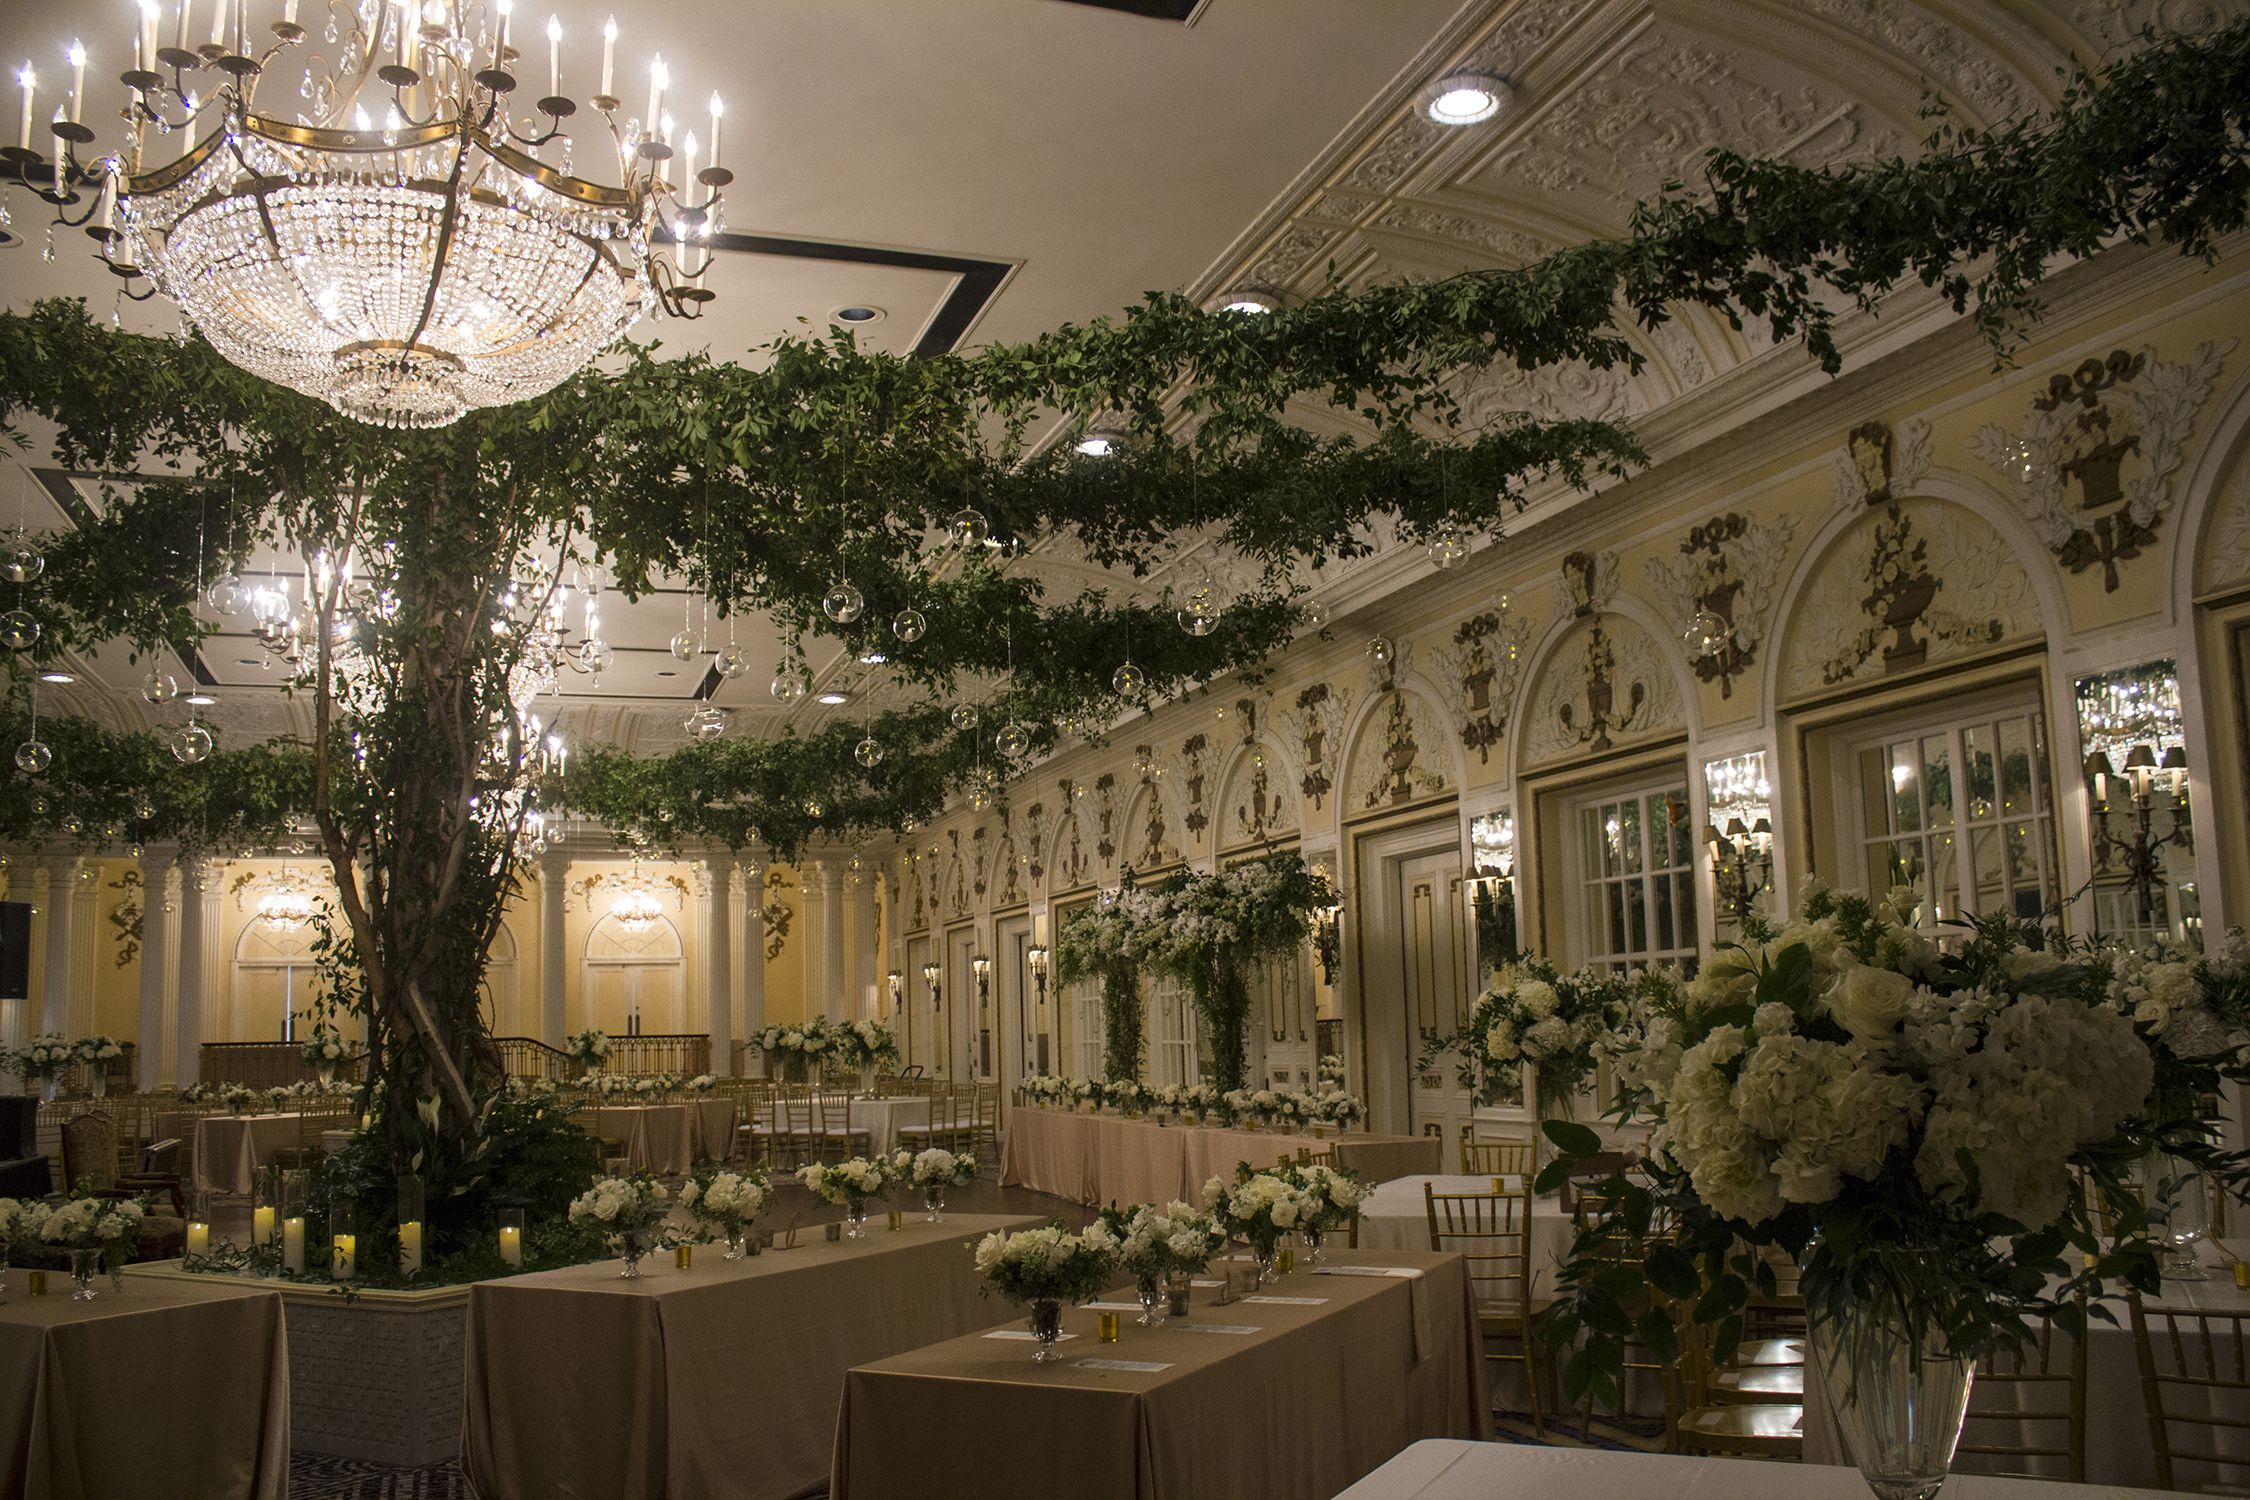 Garden Party Wedding Reception At The Peabody Hotel In